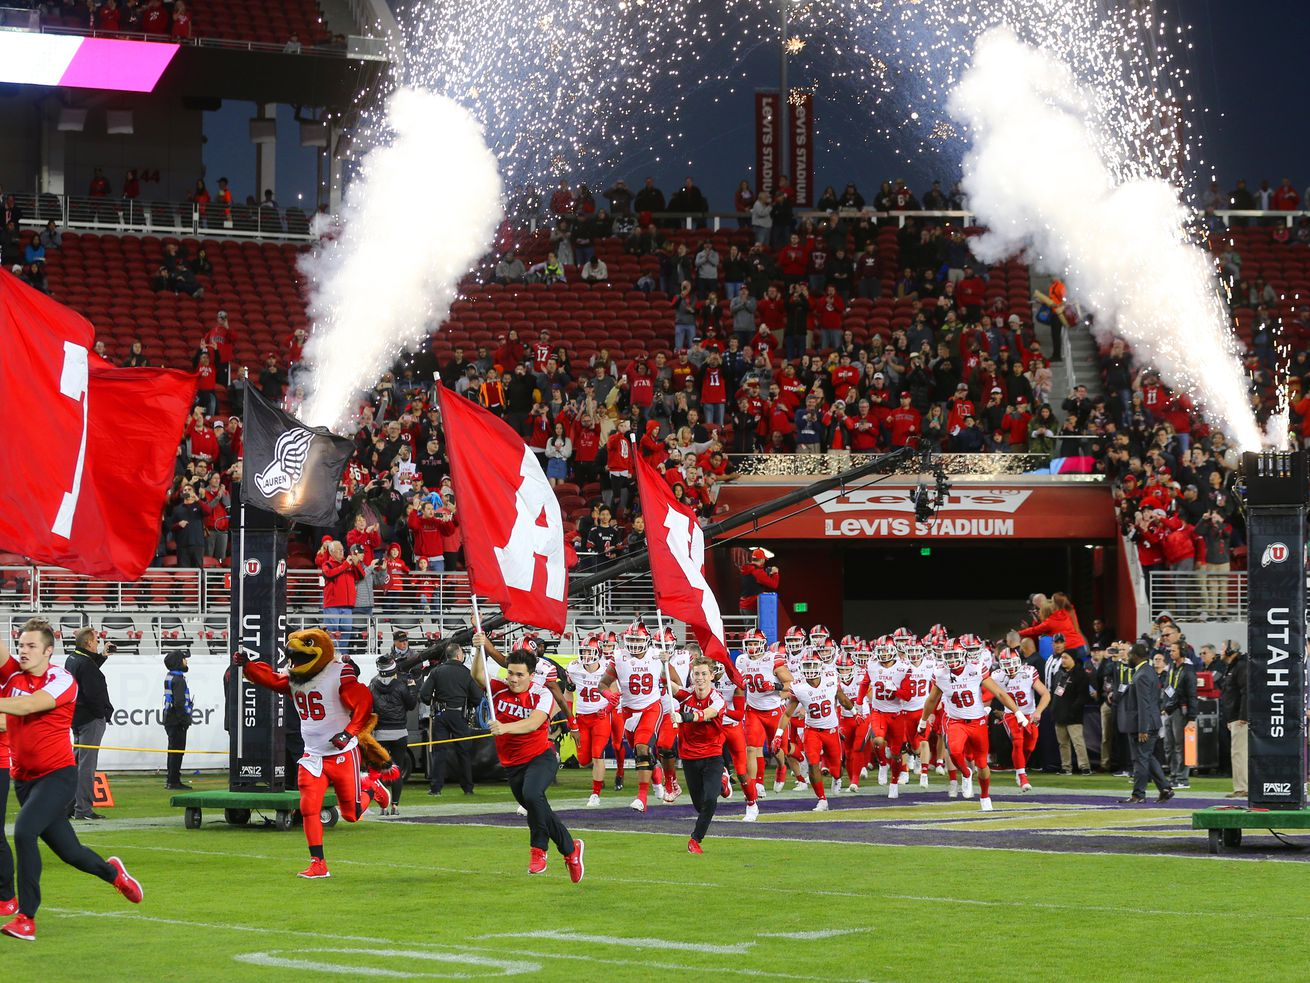 Utah-BYU game is out, as Pac-12 announces it will play conference-only games this season